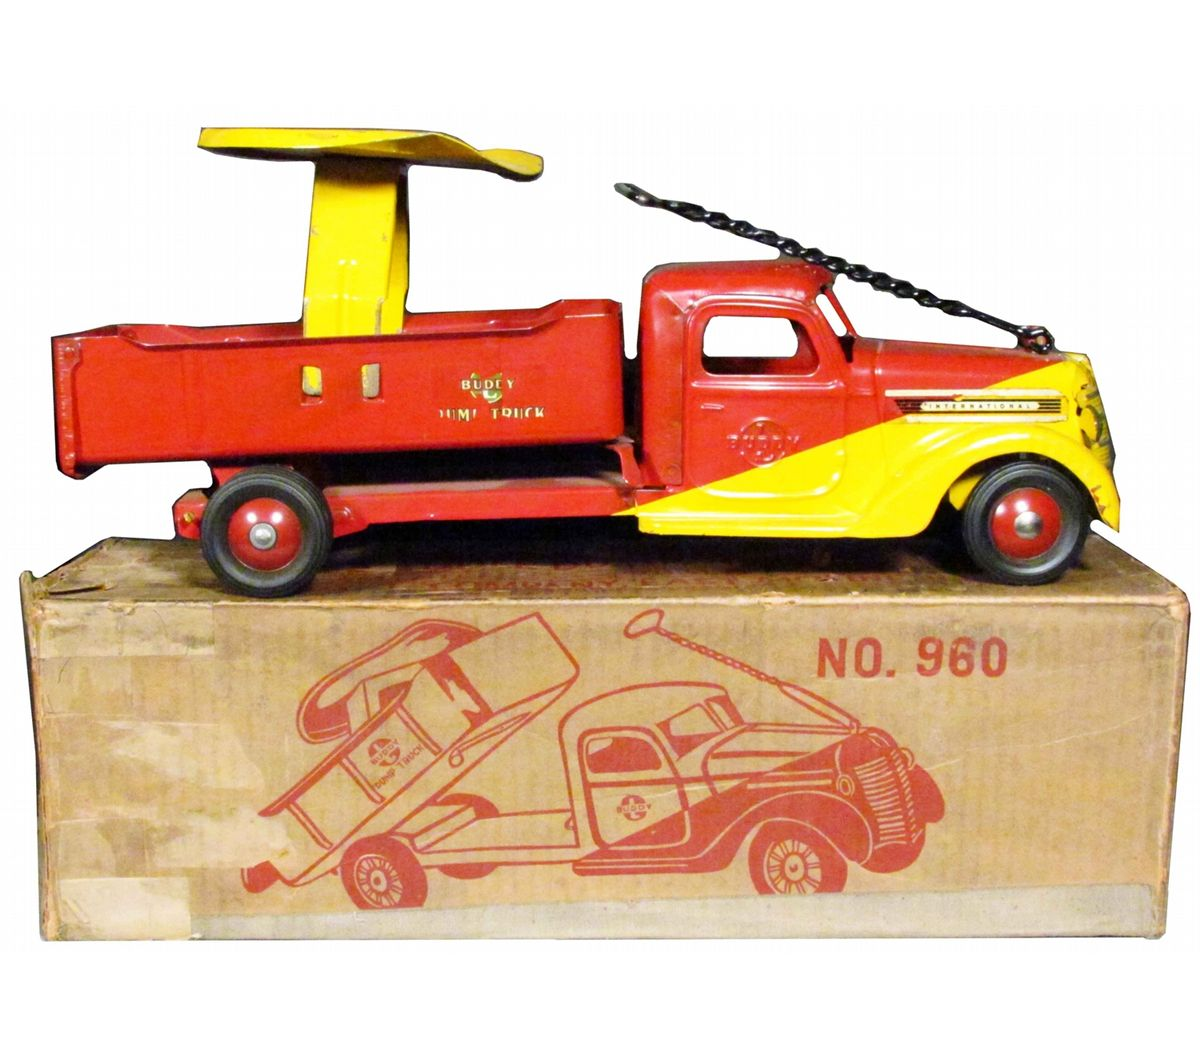 Buddy-L # 960 Saddle Dump Truck Toy